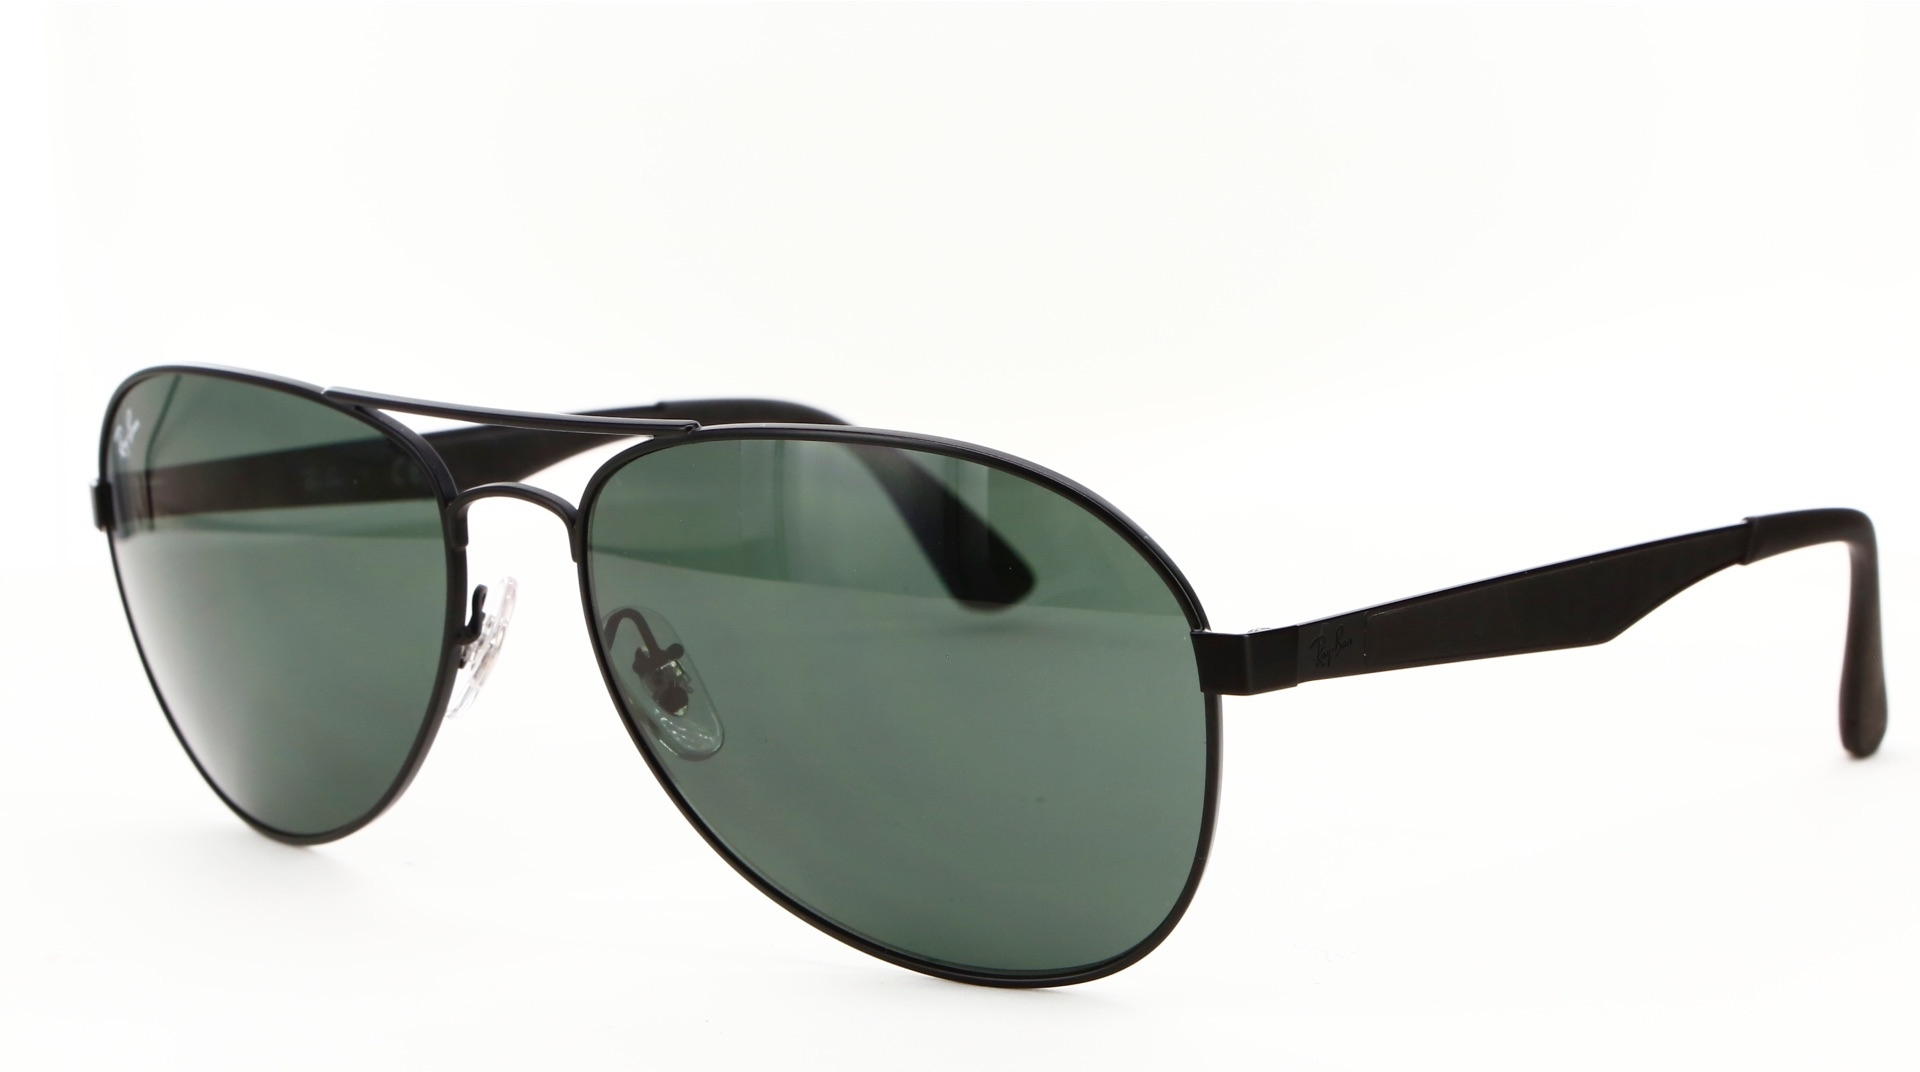 Ray-Ban - ref: 76864